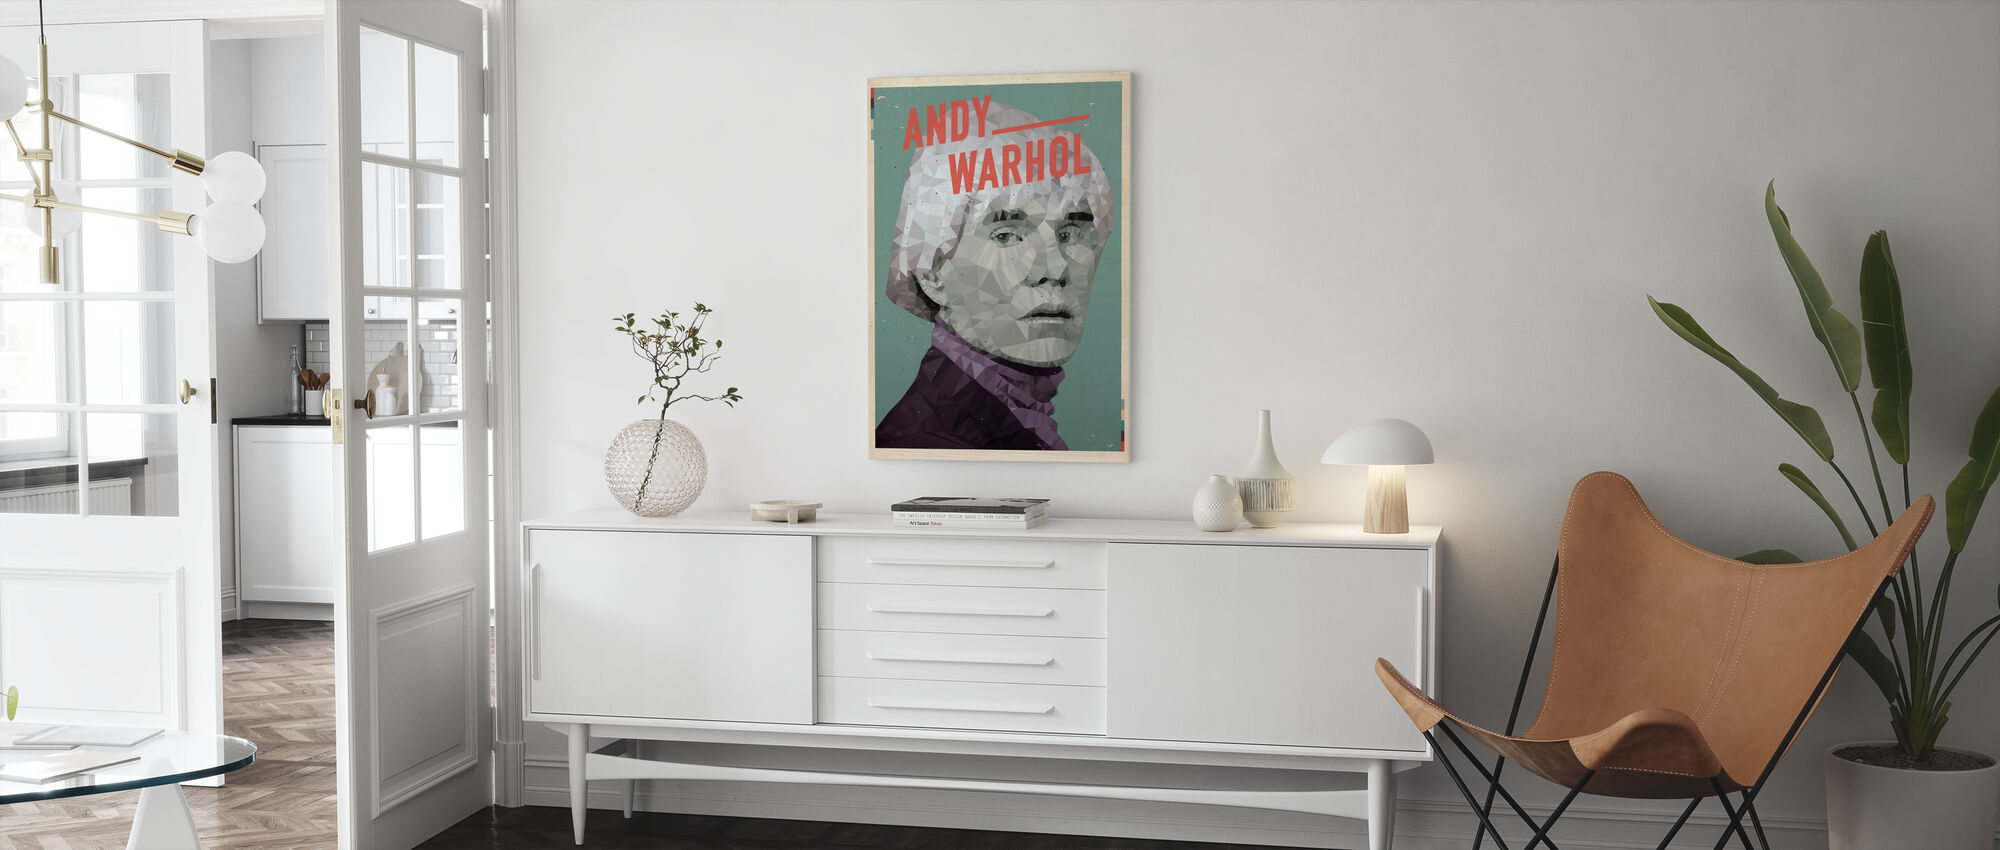 15 Minutes of Fame - Canvas print - Living Room